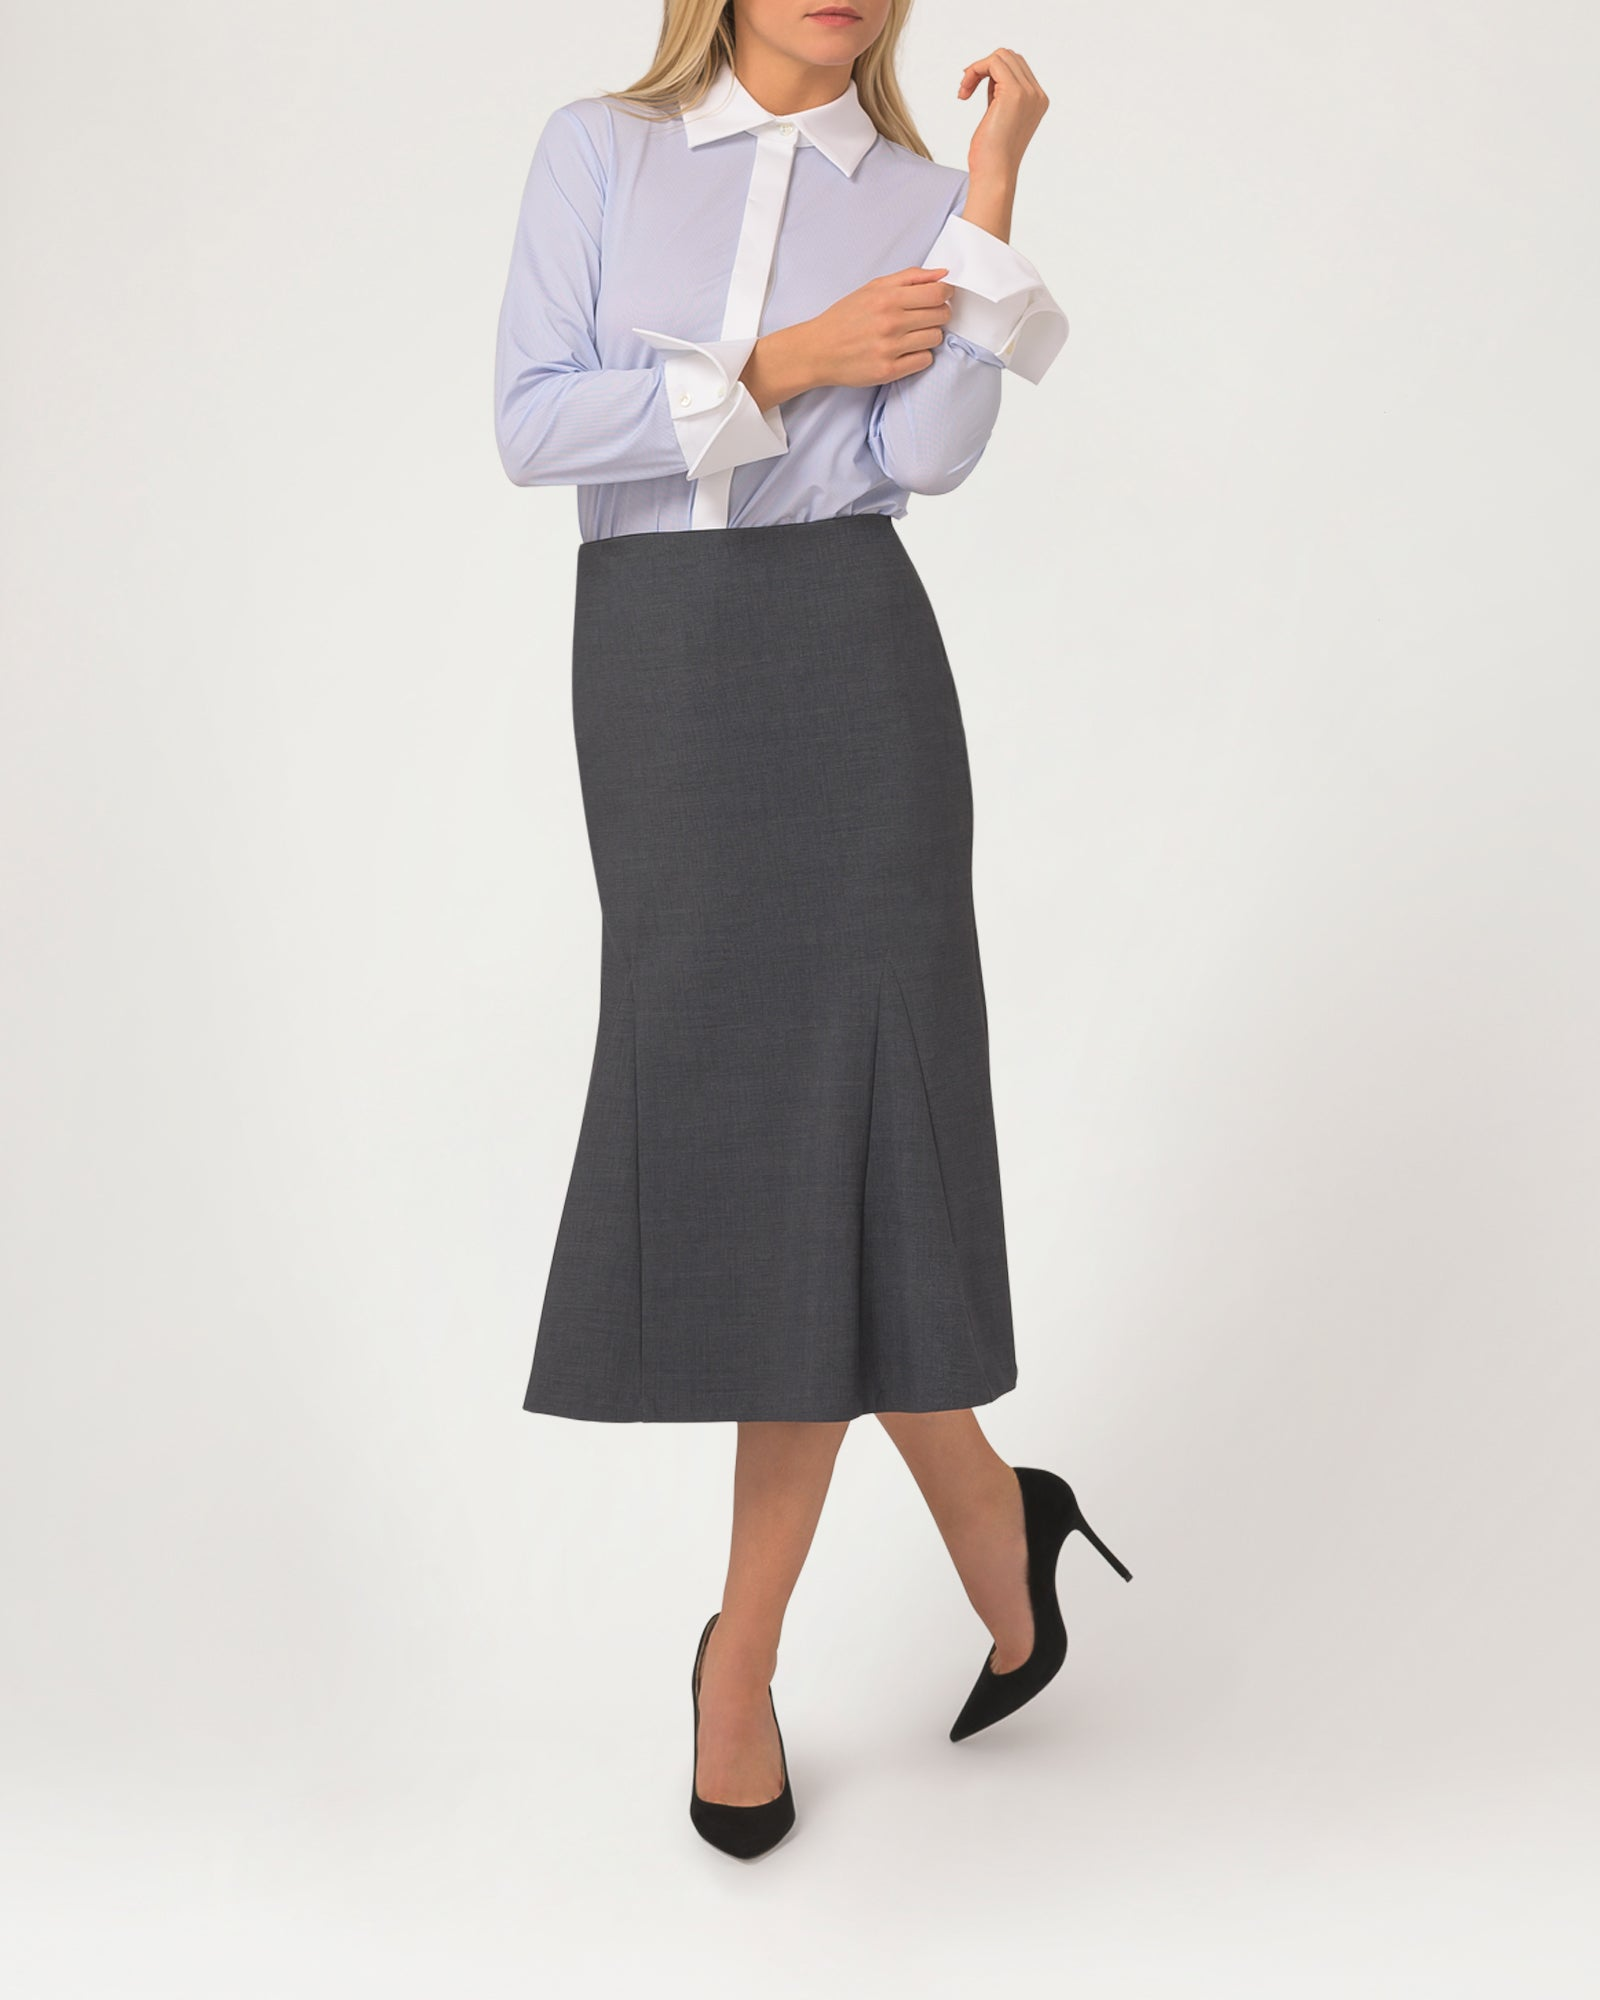 Notch Skirt Charcoal